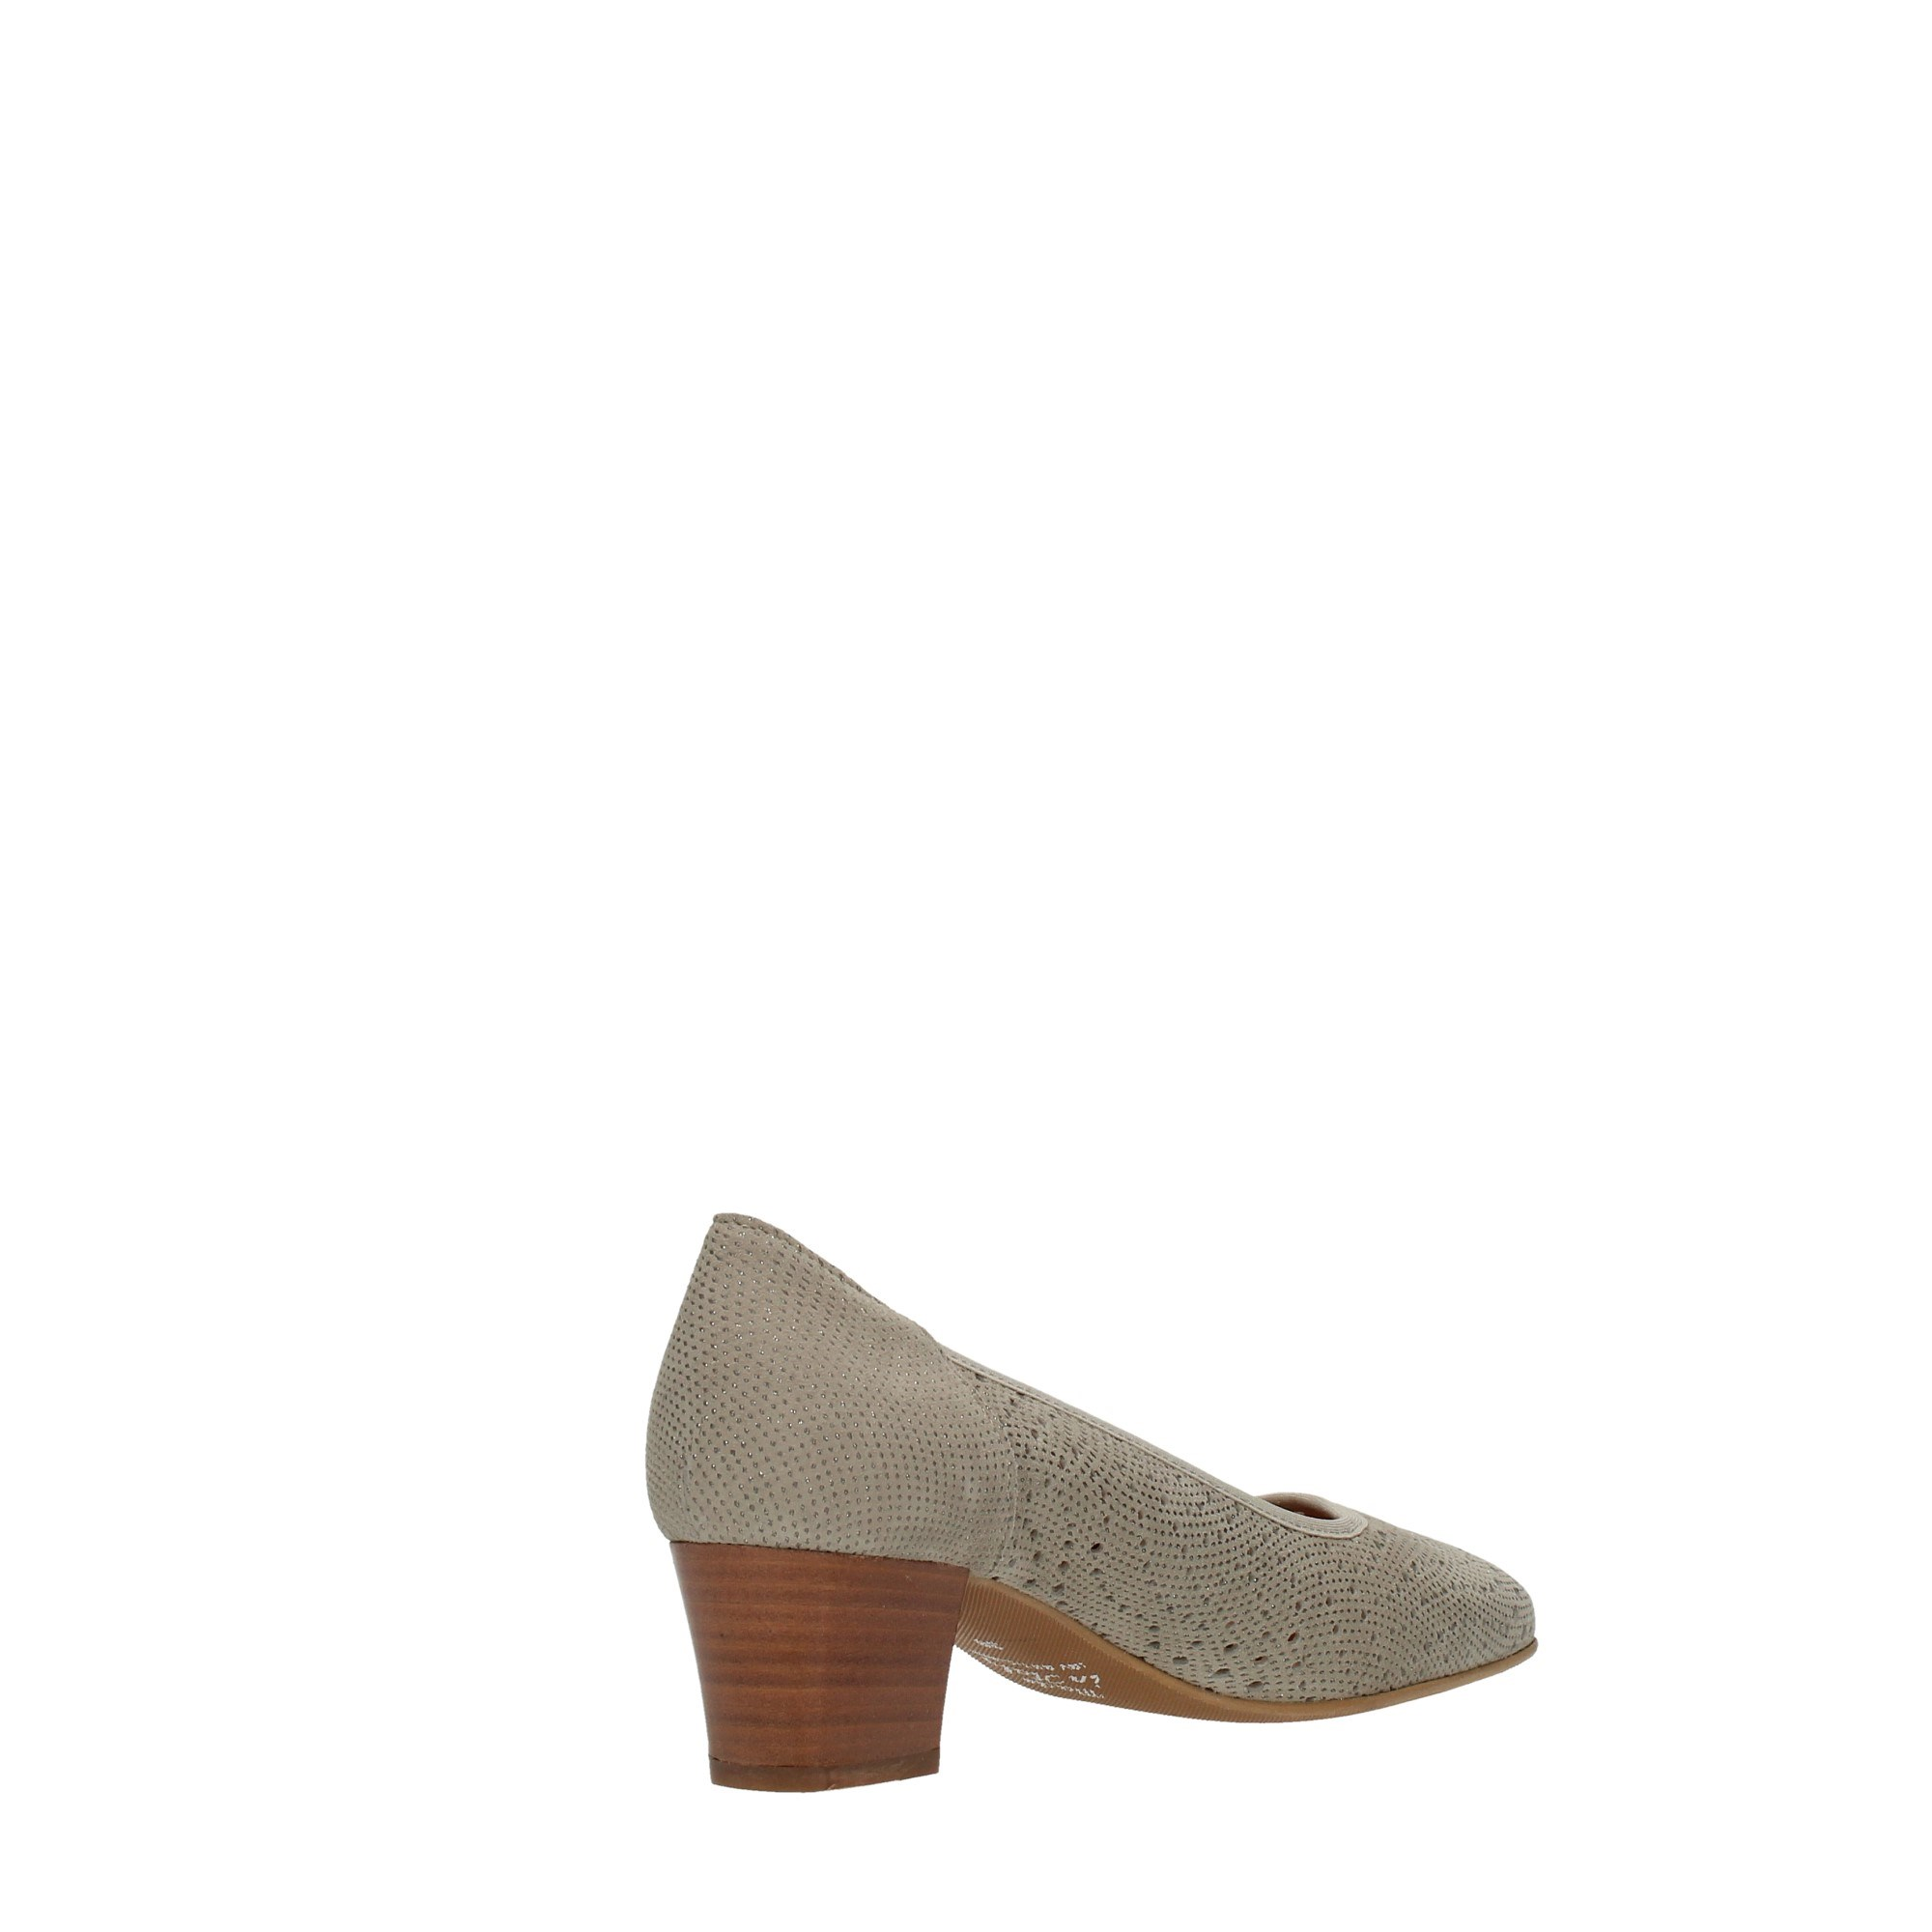 Daniela Rossi Shoes Women Cleavage And Heeled Shoes Beige 11511-